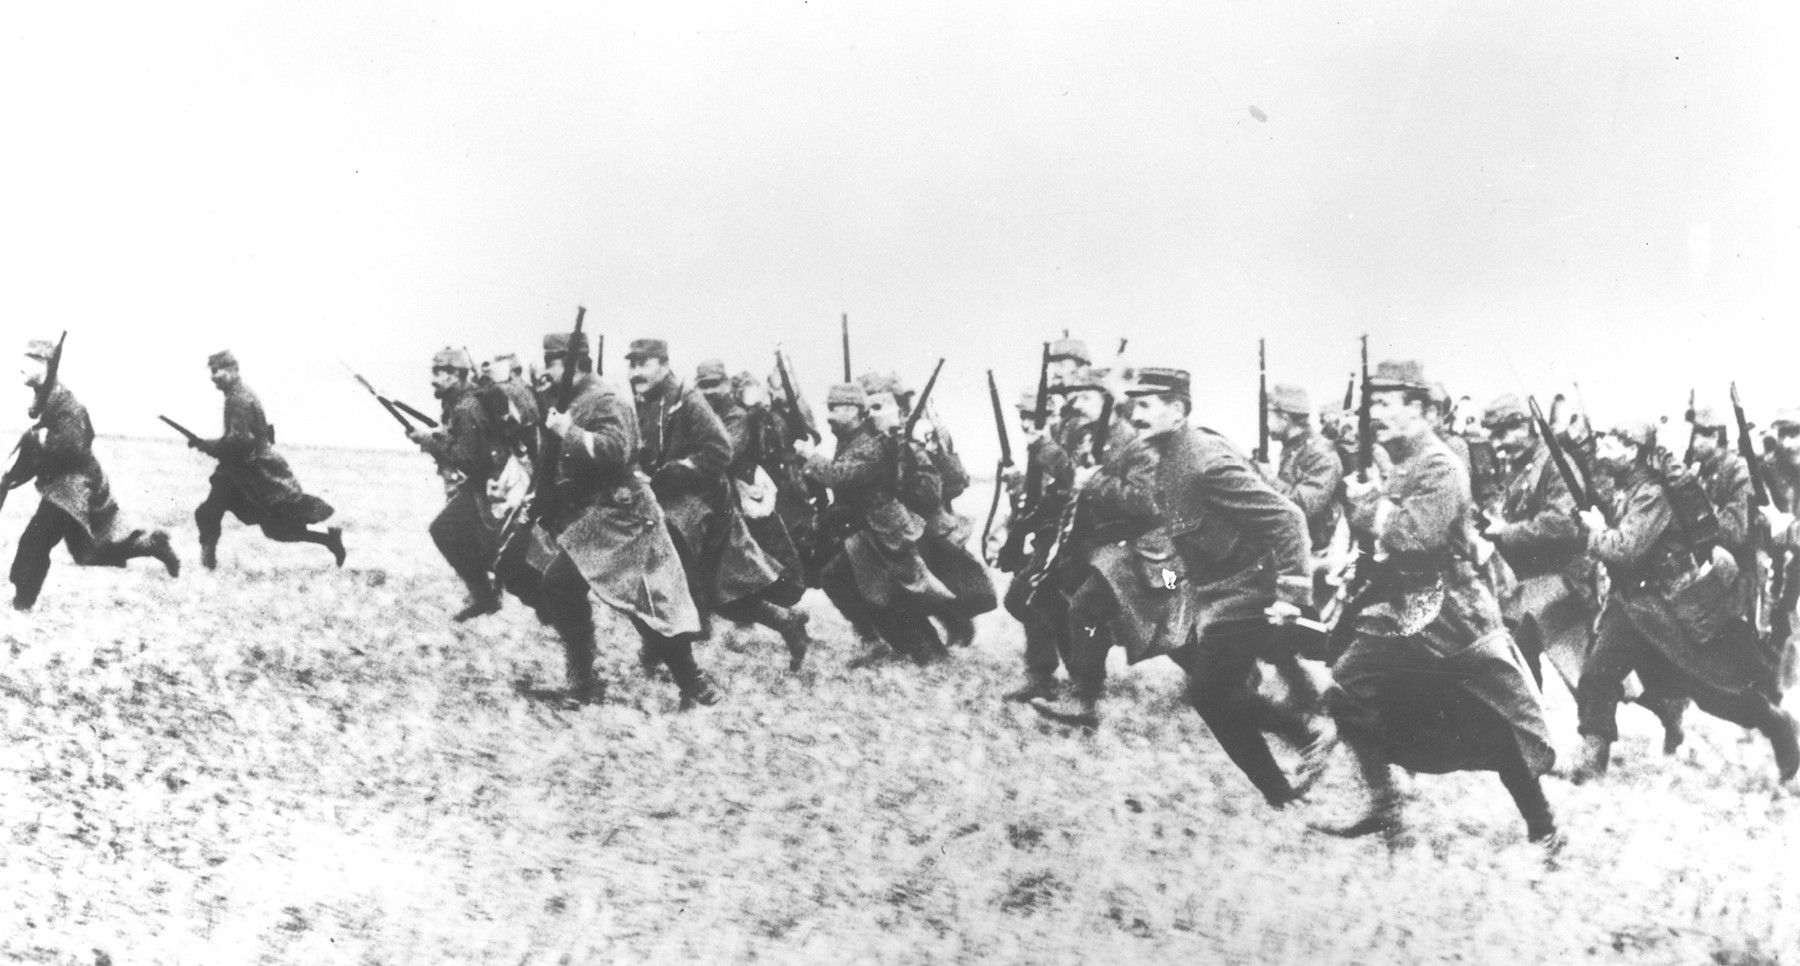 Discover fascinating stories about World War I volunteers